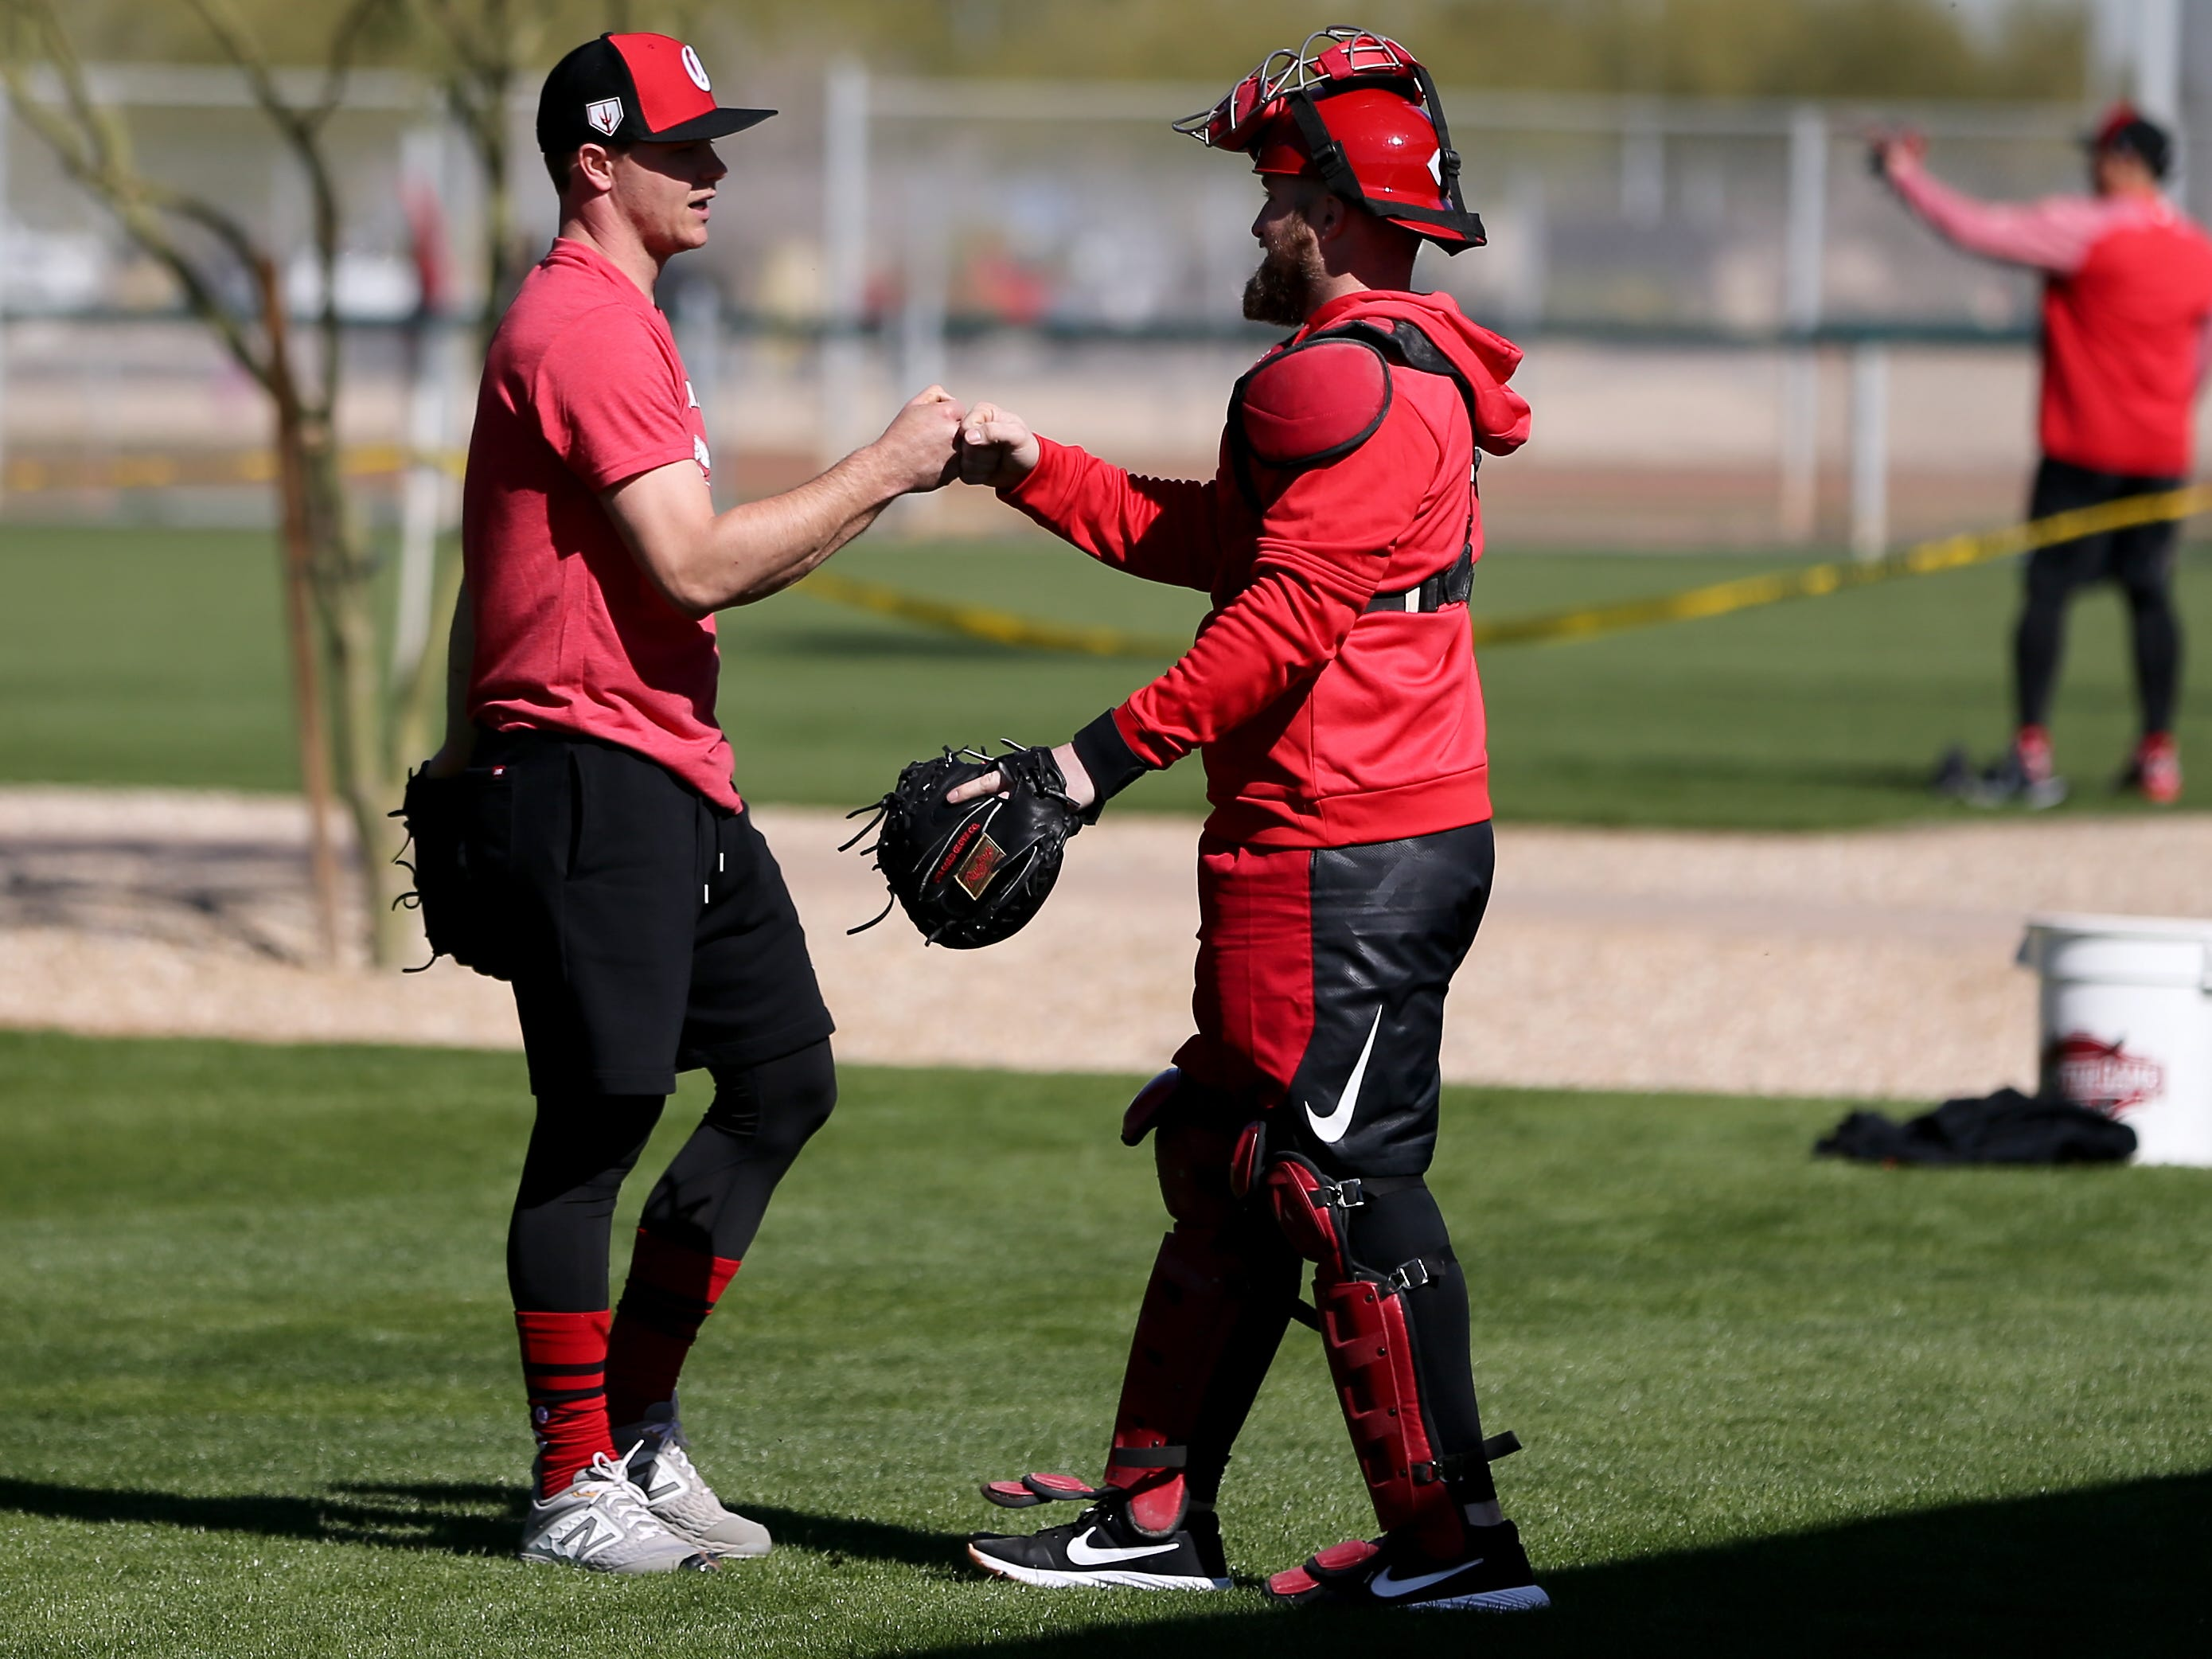 Cincinnati Reds pitchers and catchers participate in informal workouts on report day, Tuesday, Feb. 12, 2019, at the Cincinnati Reds spring training facility in Goodyear, Arizona.